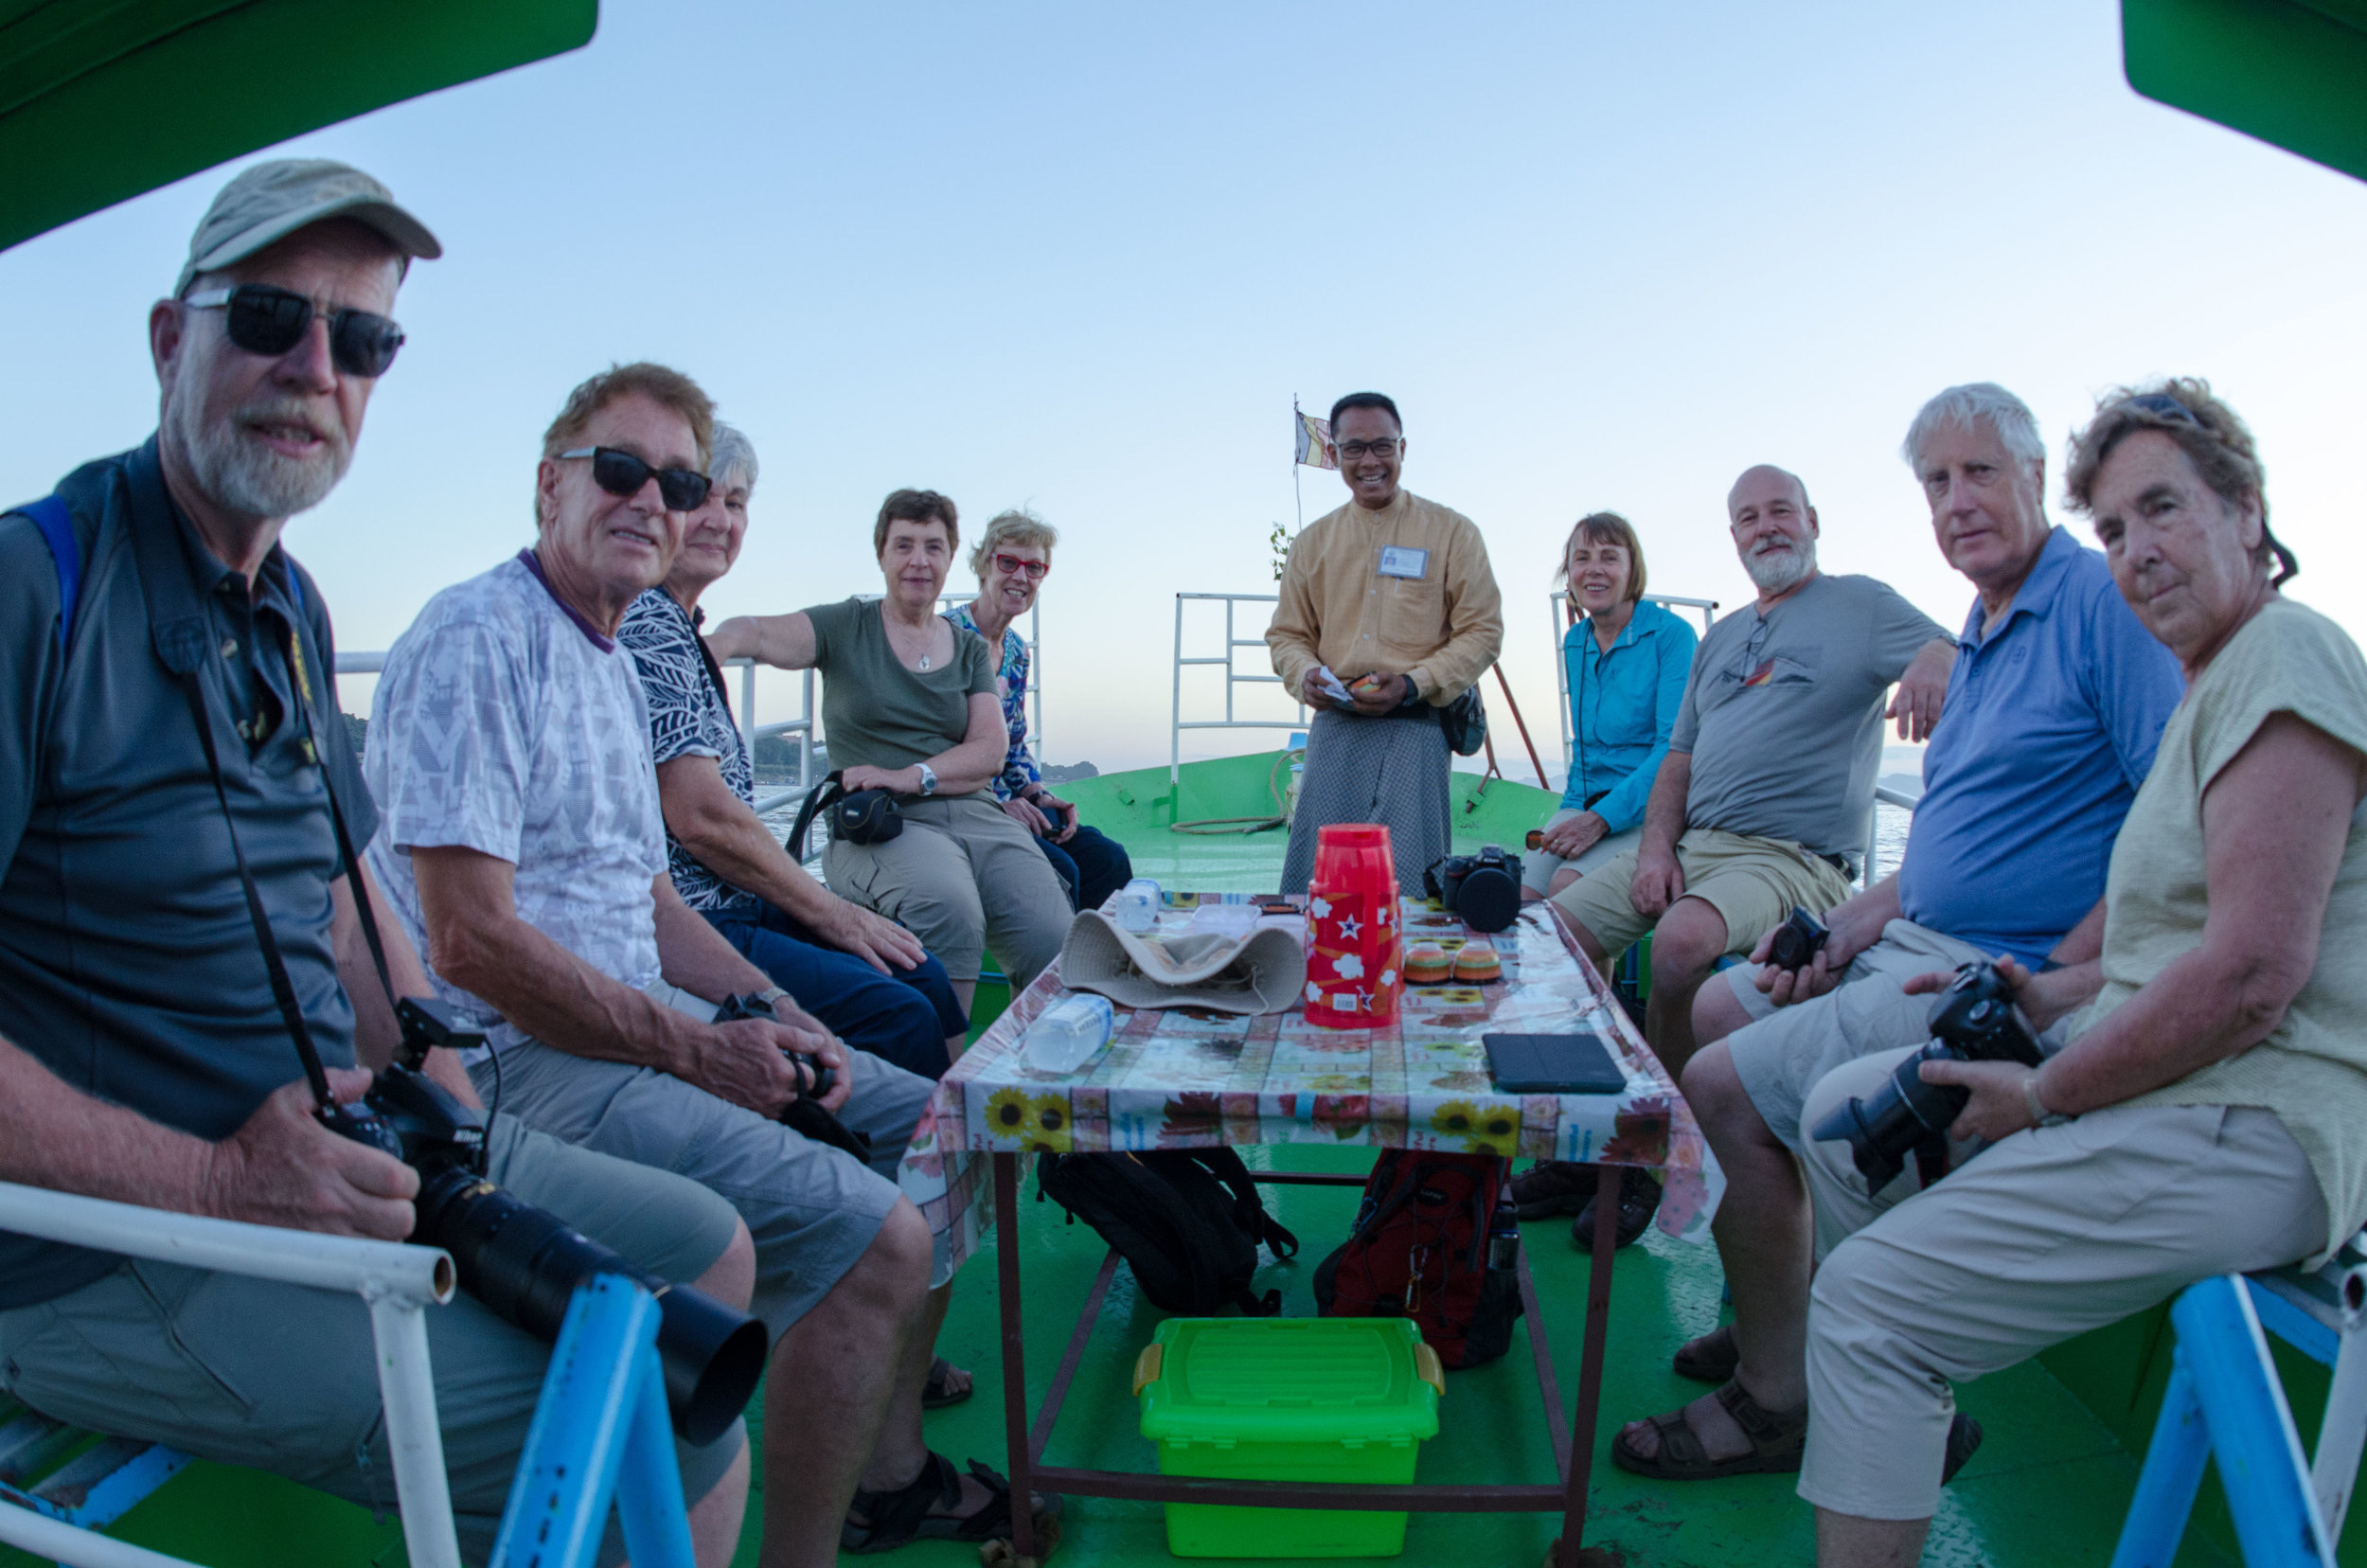 Our group on sunset cruise 001, Irrawaddy River, Bagan, Myanmar, 19 Nov 2017.jpg